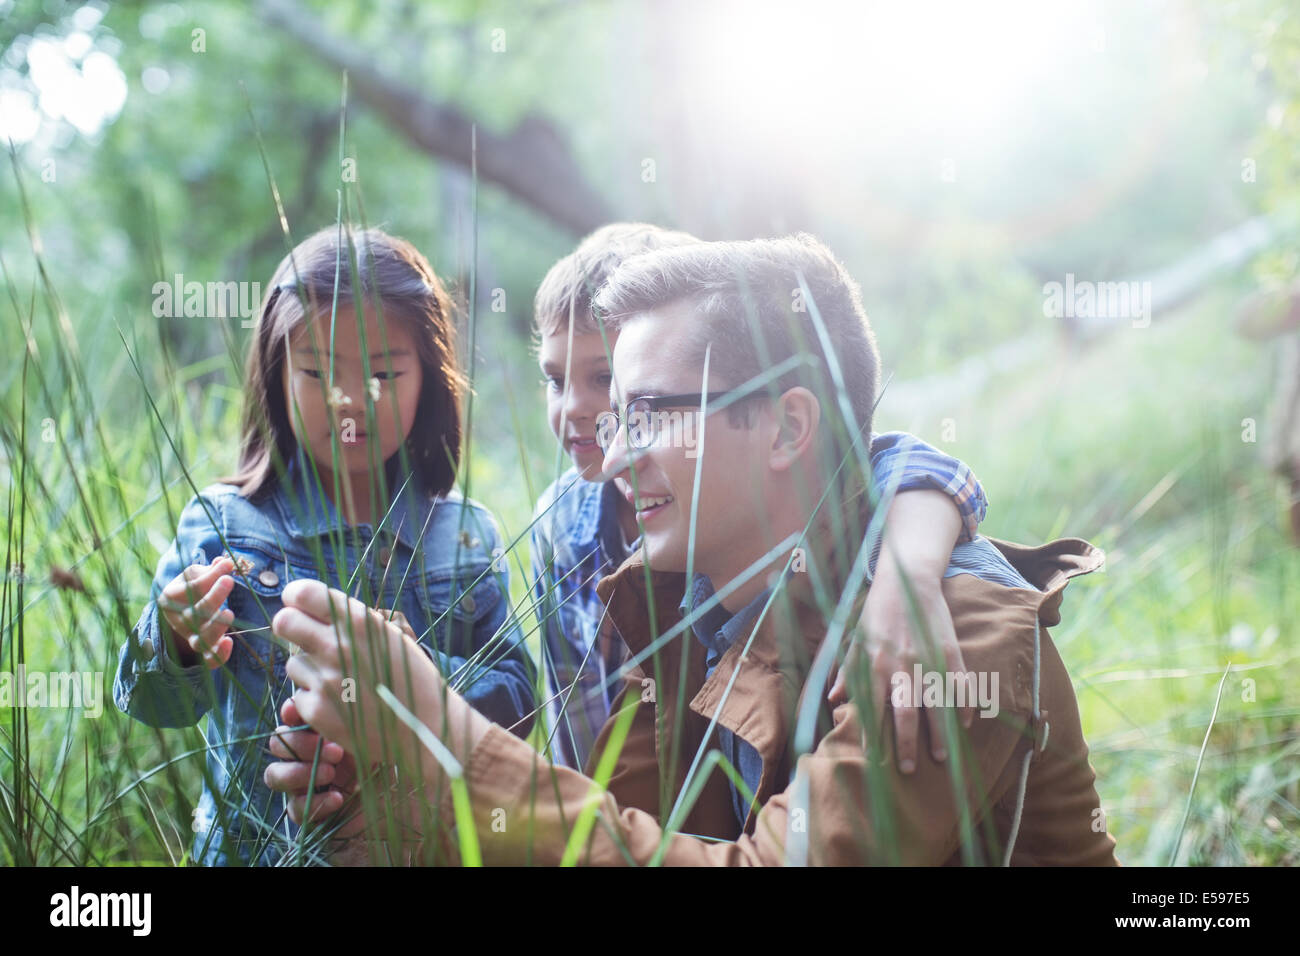 Students and teacher examining grass in forest - Stock Image